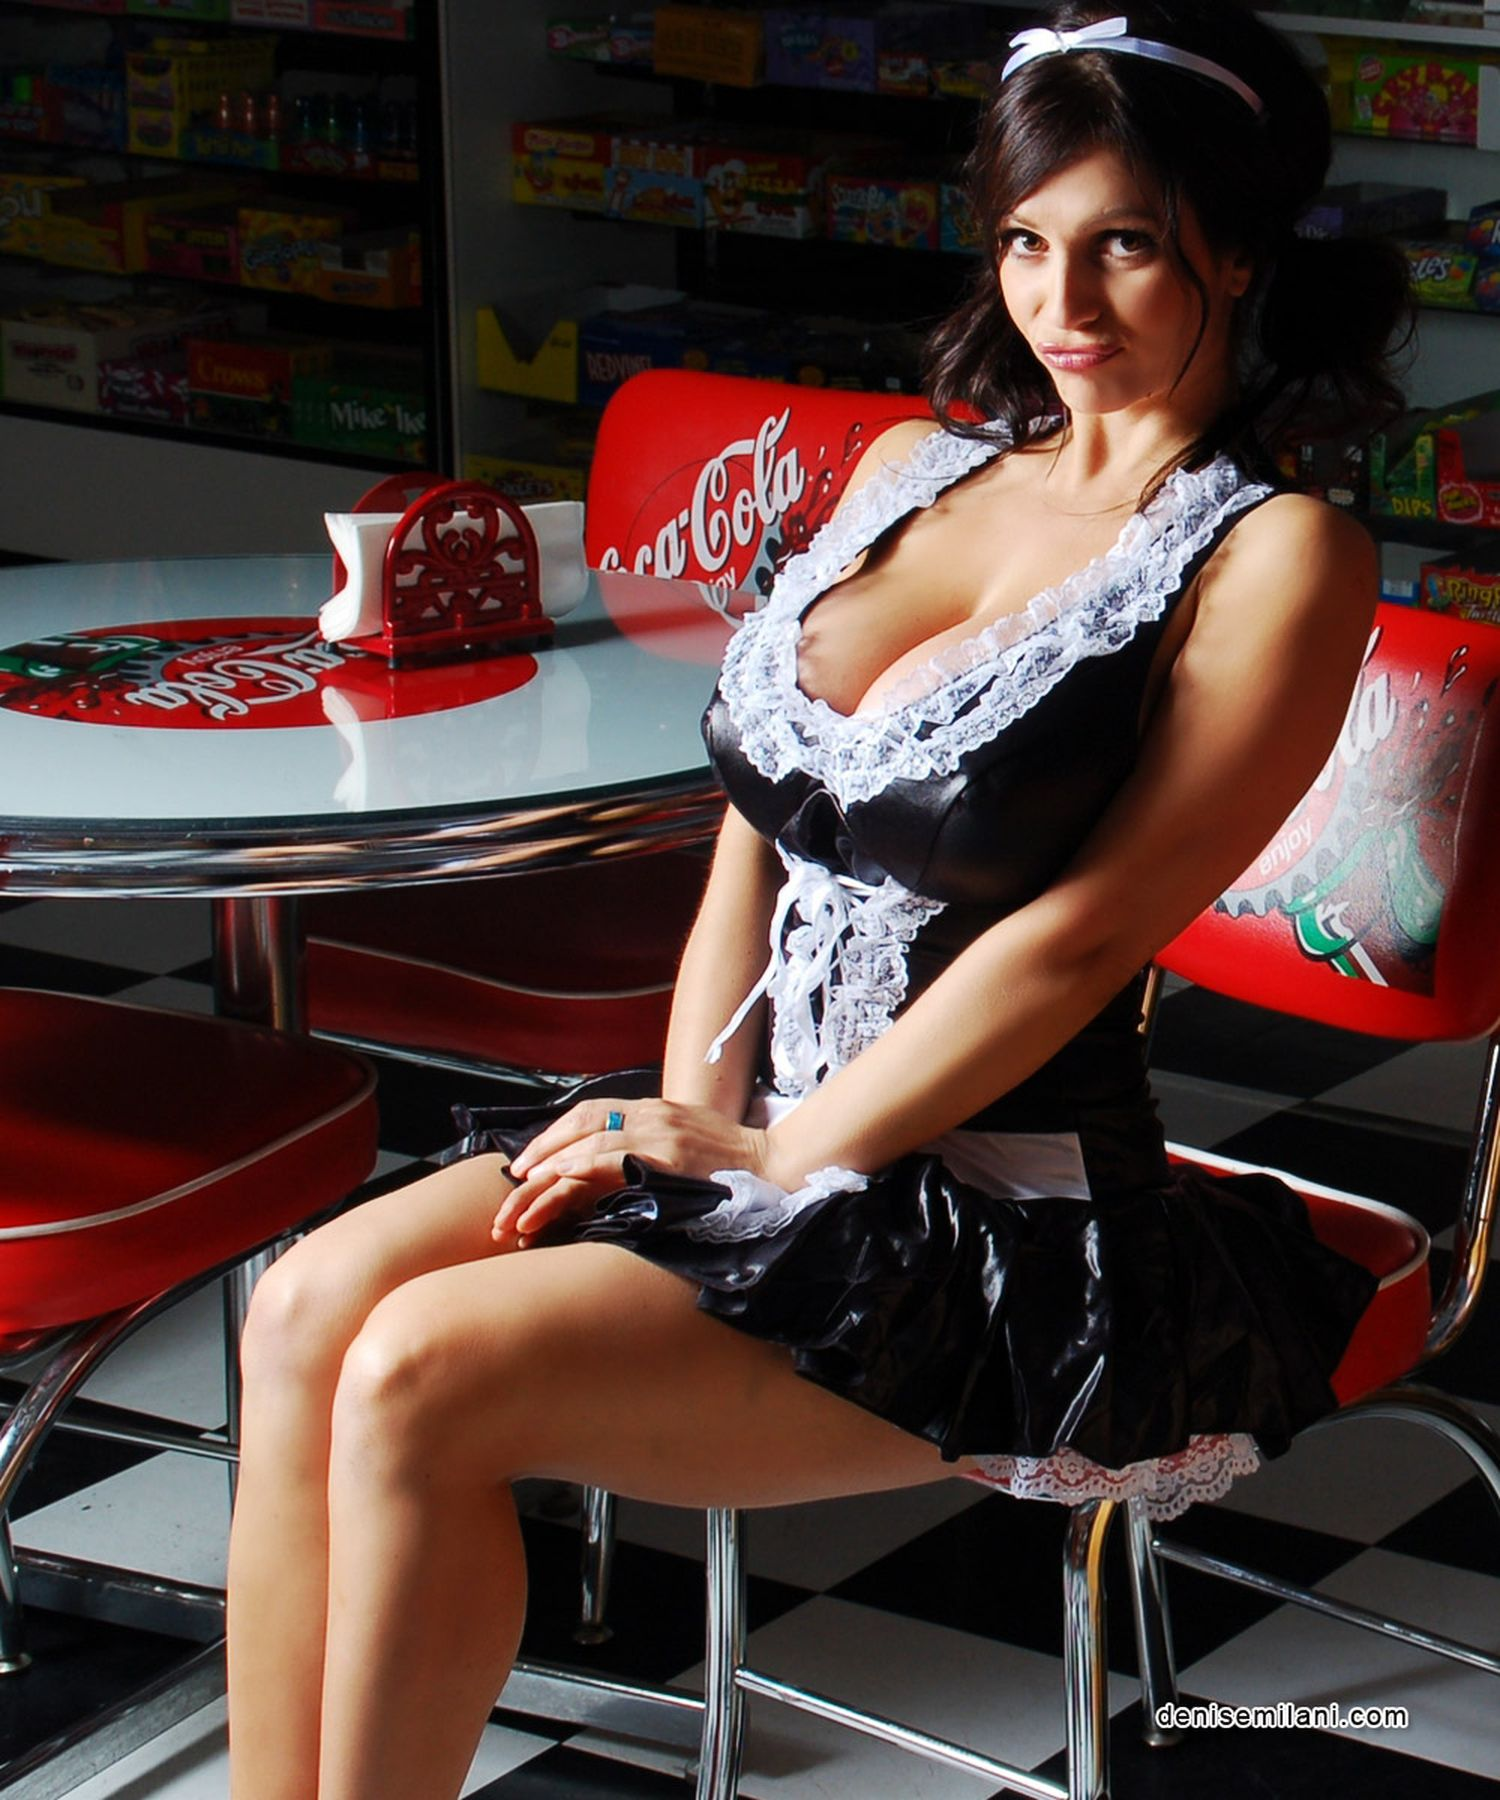 Discoball ladies french maid costume fancy sexy maid outfit cosplay dress for women